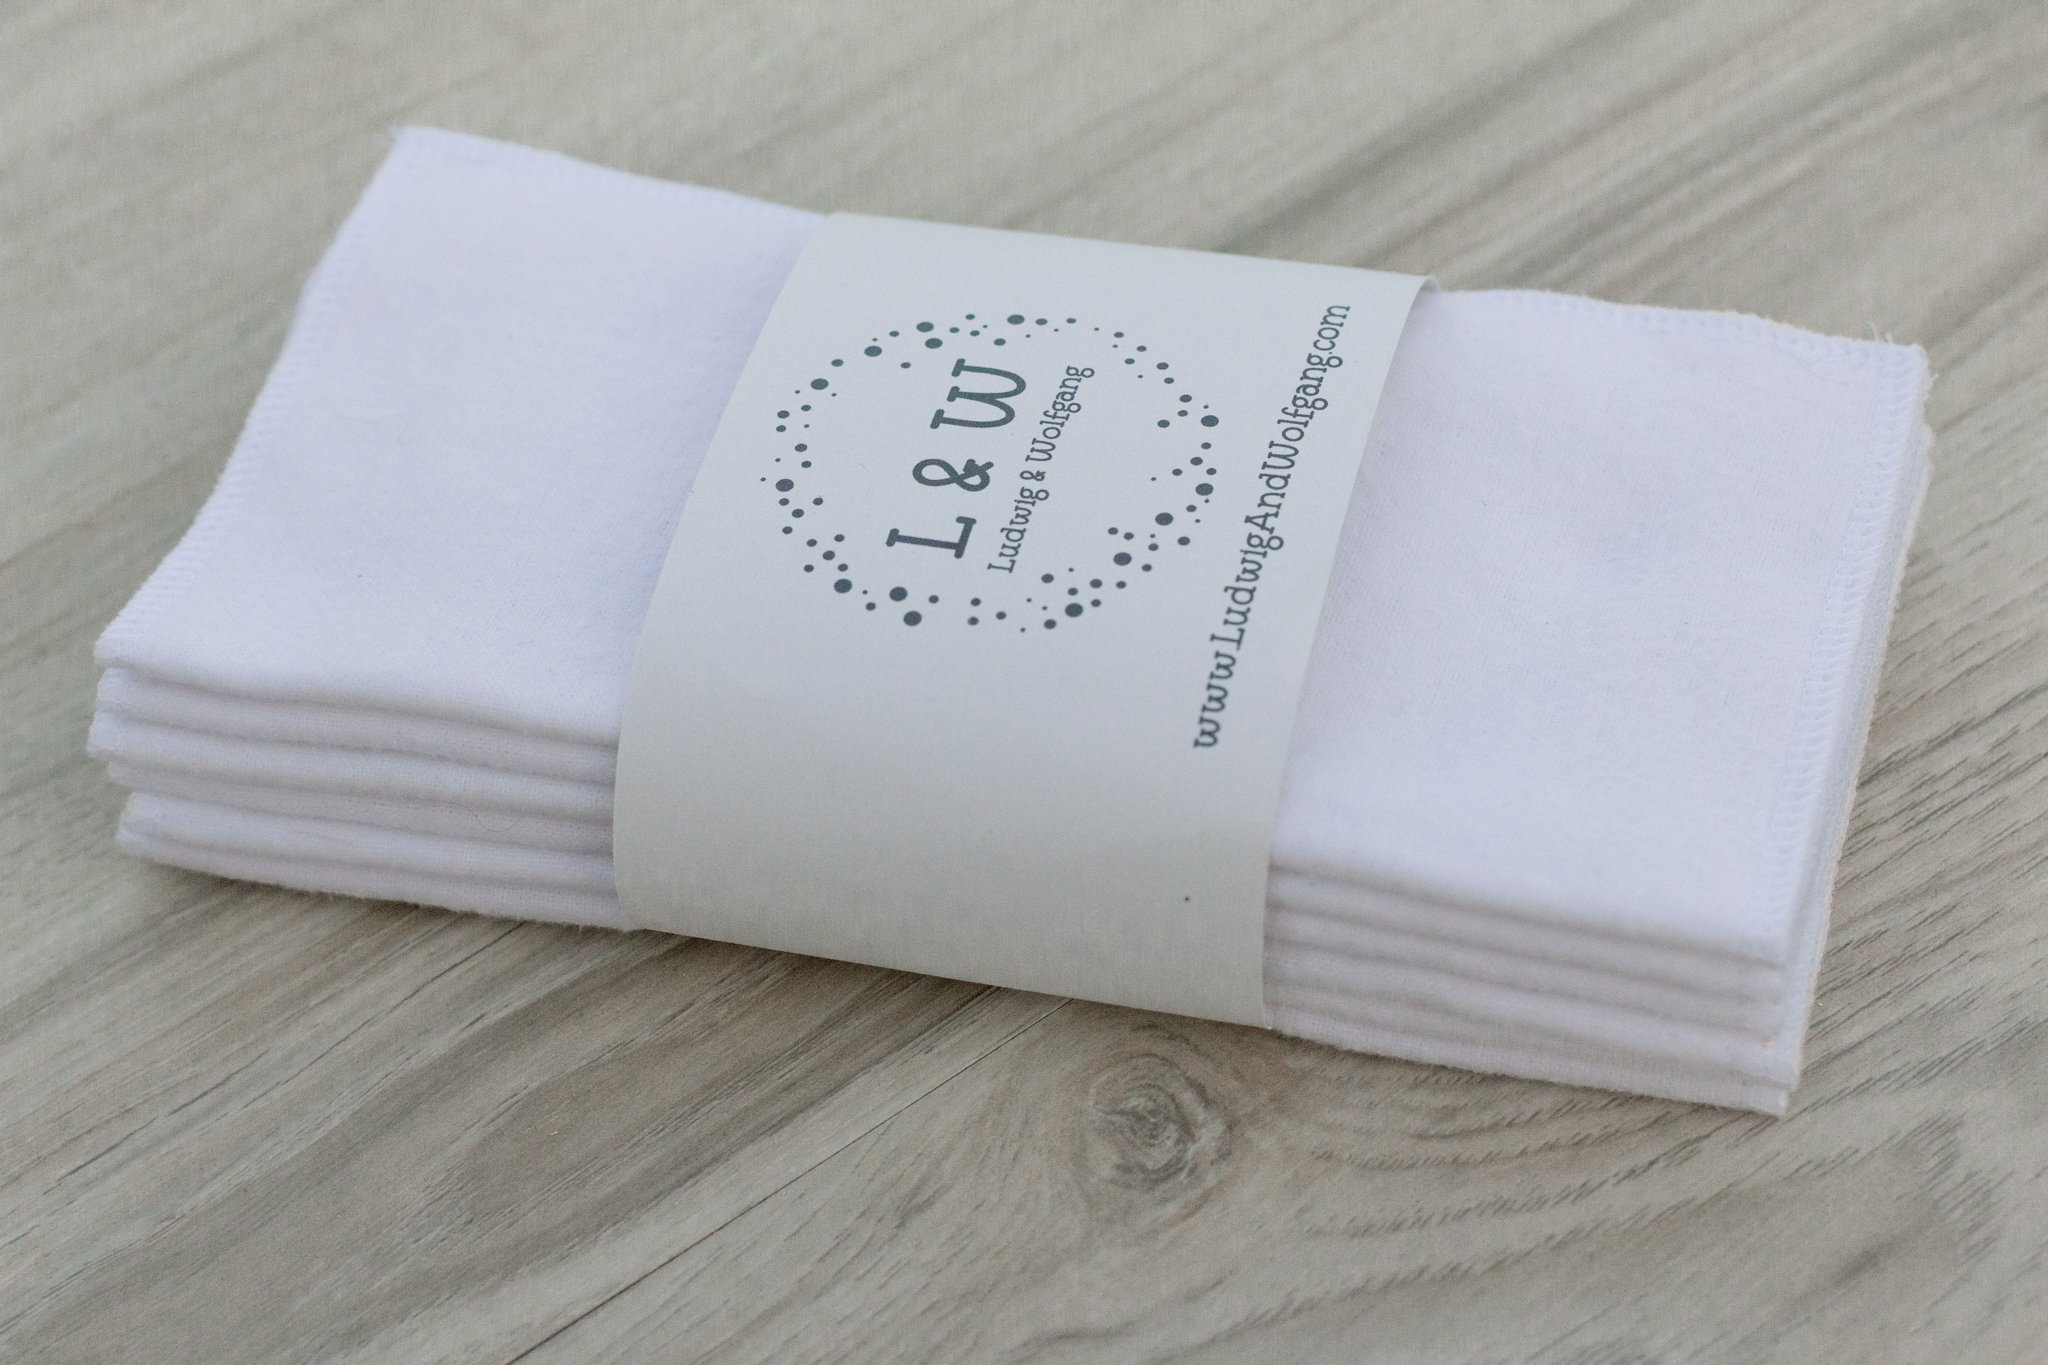 Bundle of Wipes (6 White, 2-Ply Flannel)